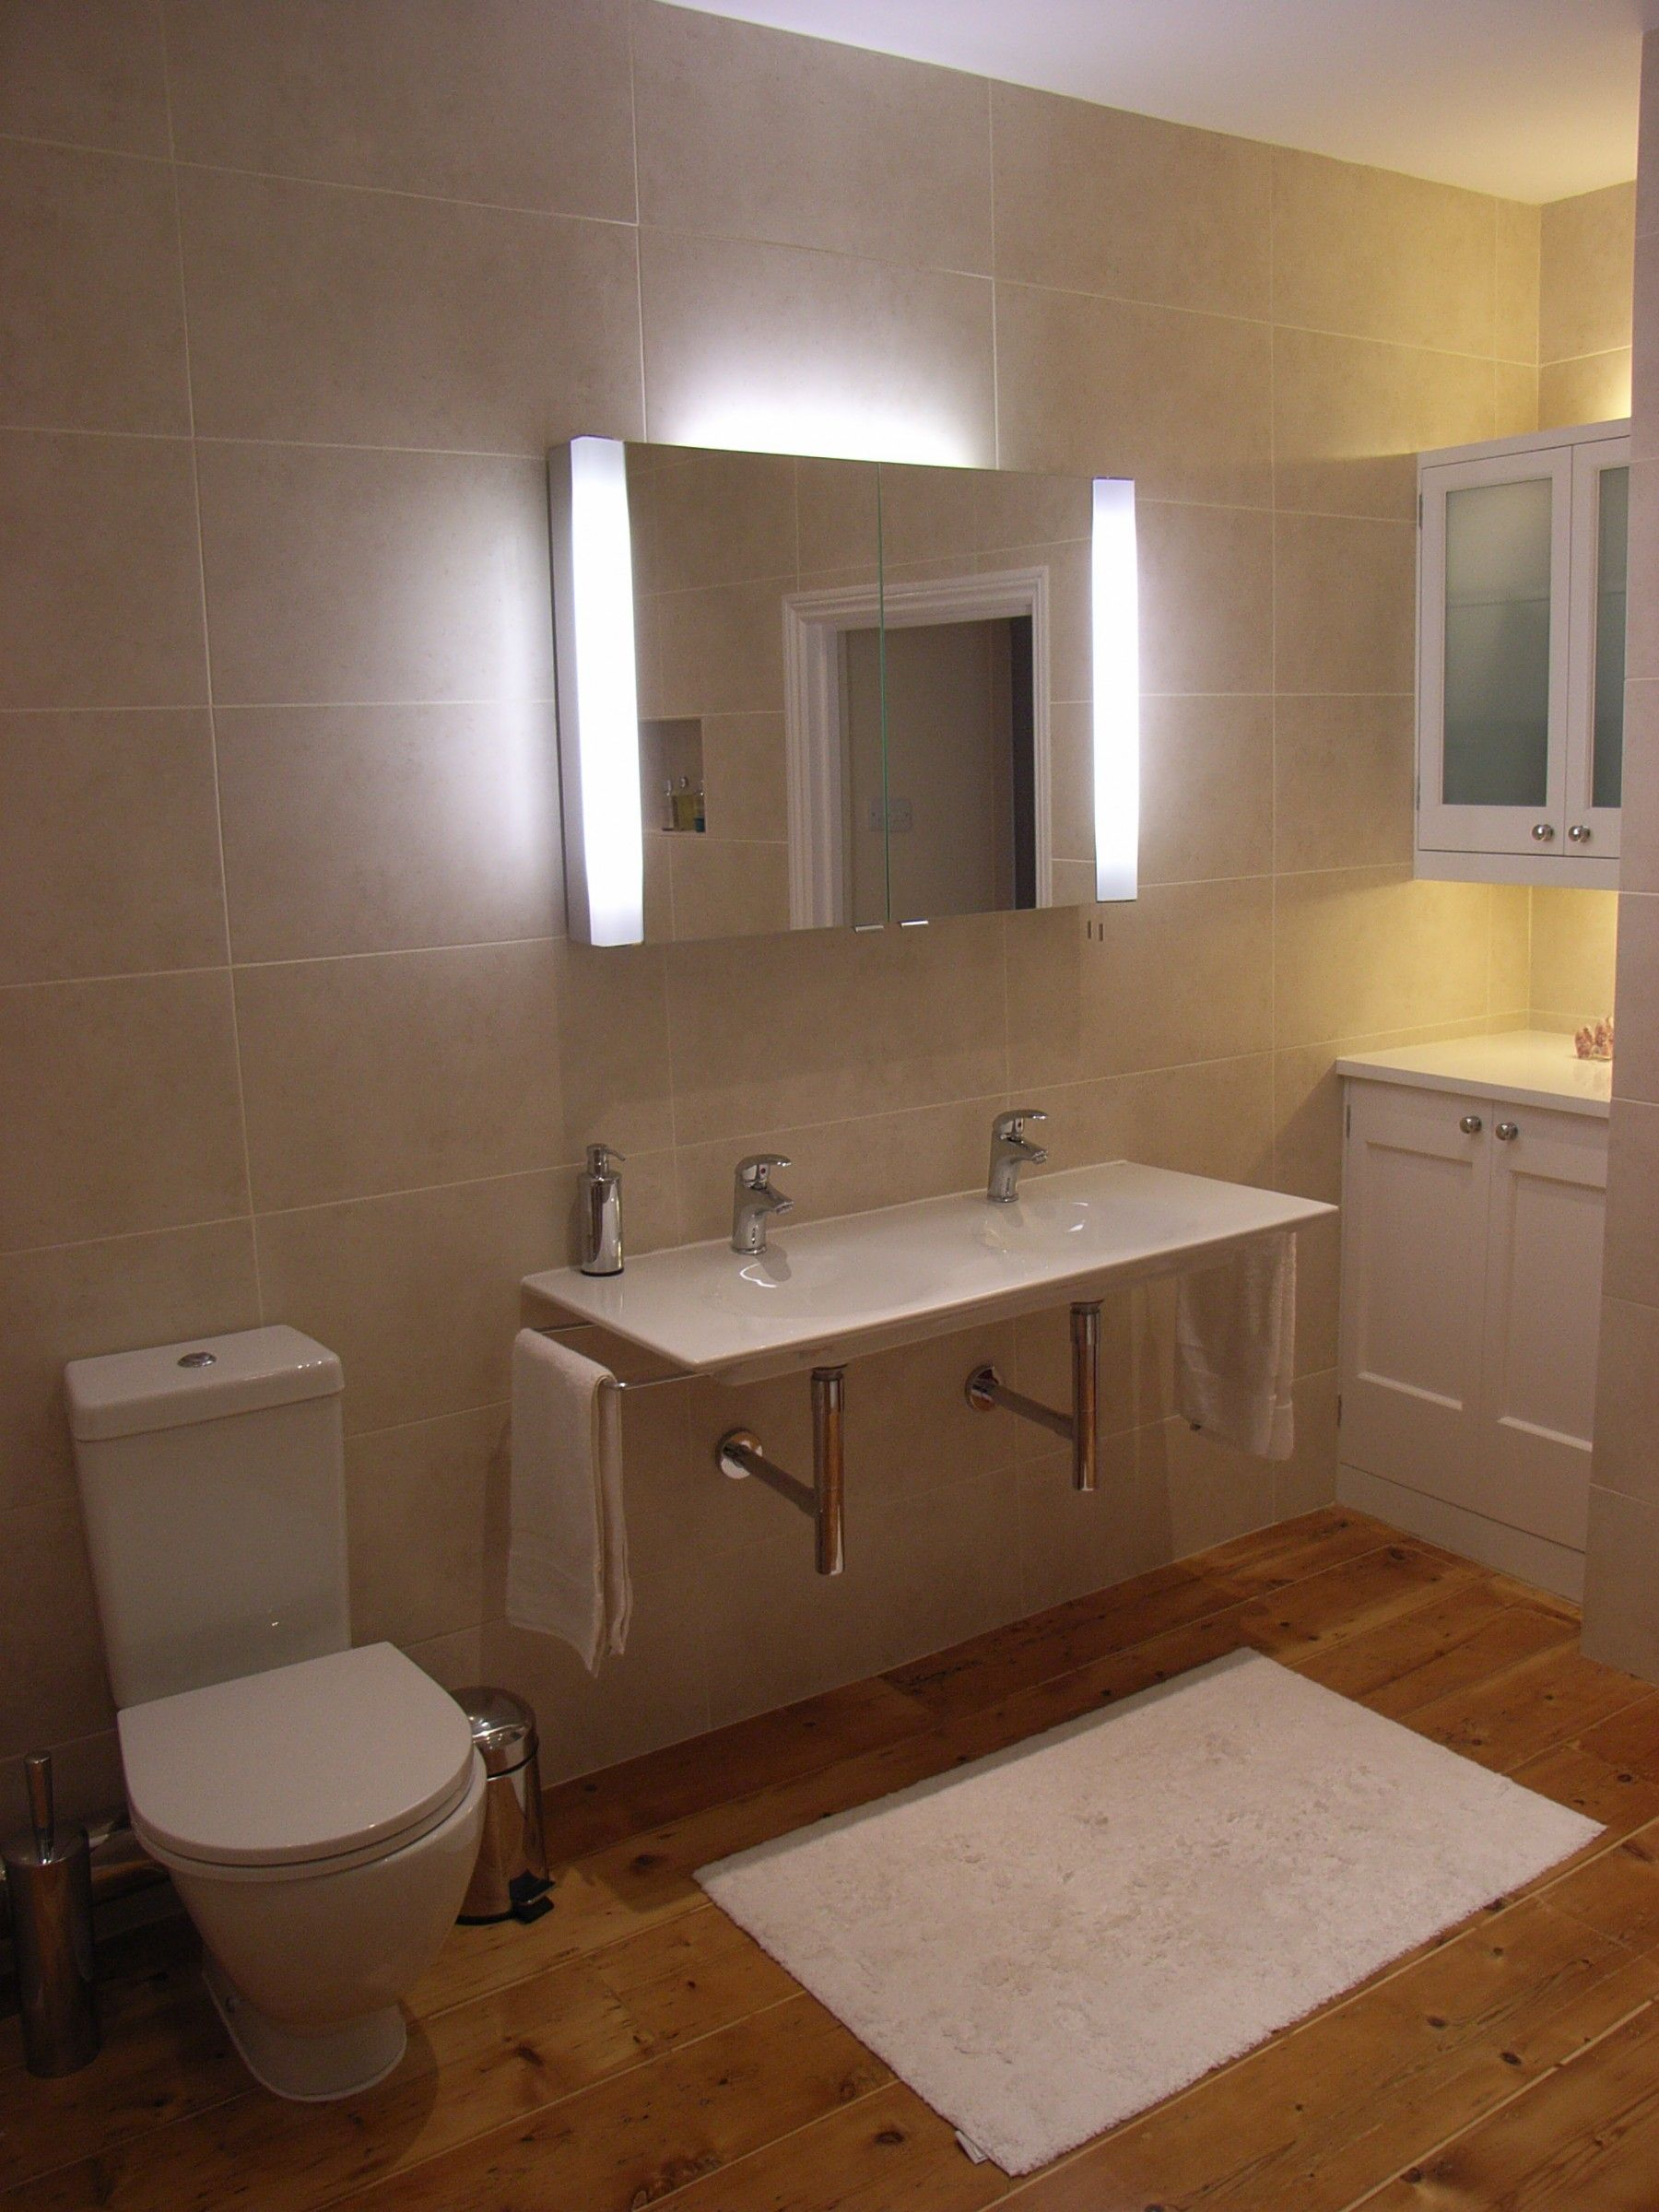 Double basin in bathroom with large mirror cabinet above. If you buy ...